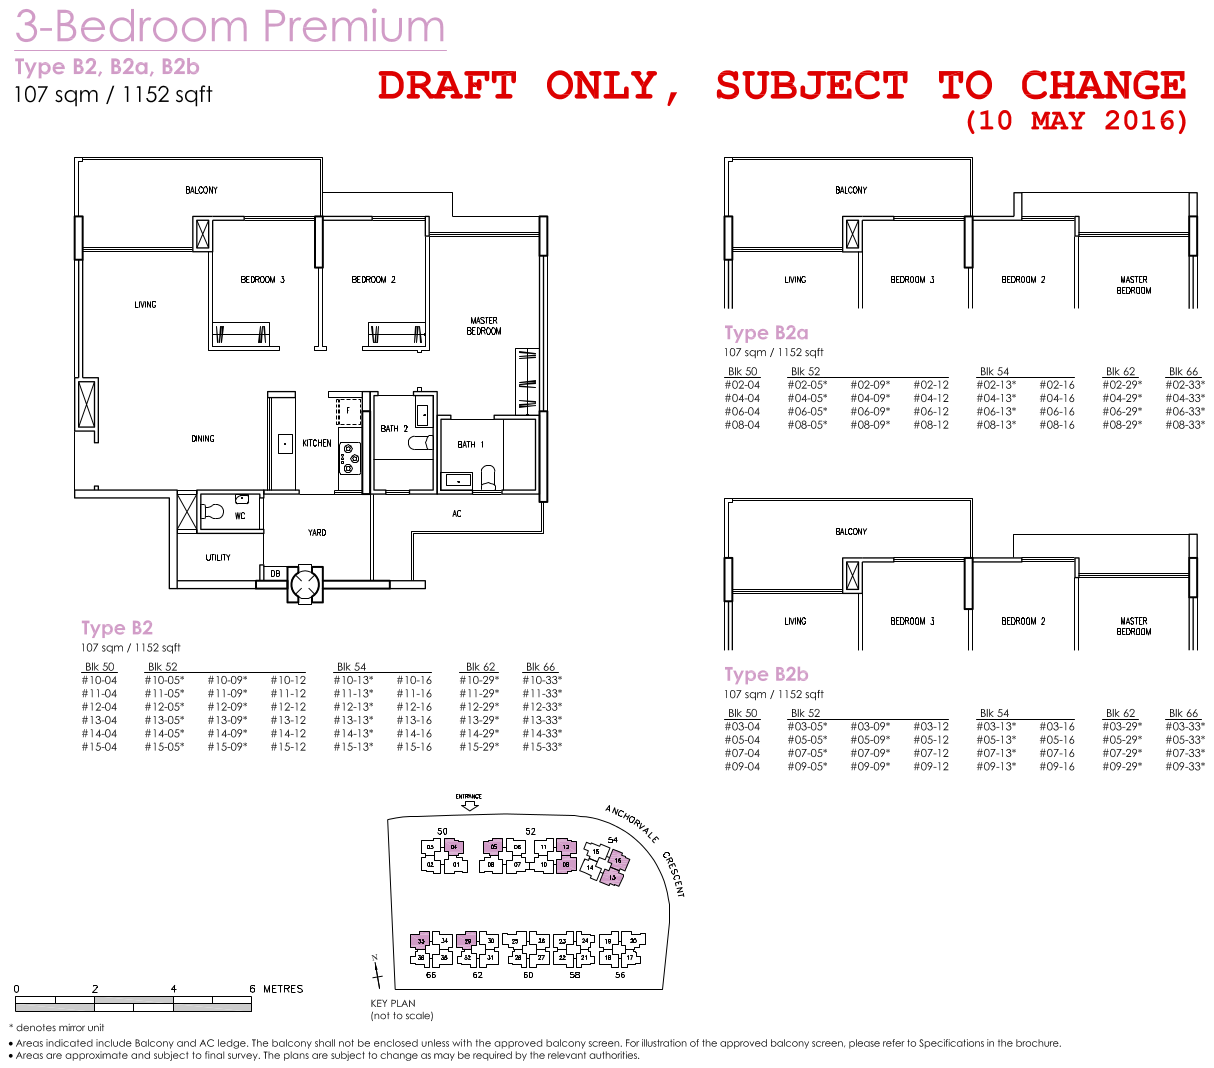 Treasure Crest Floor Plans 3 Bedroom Premium